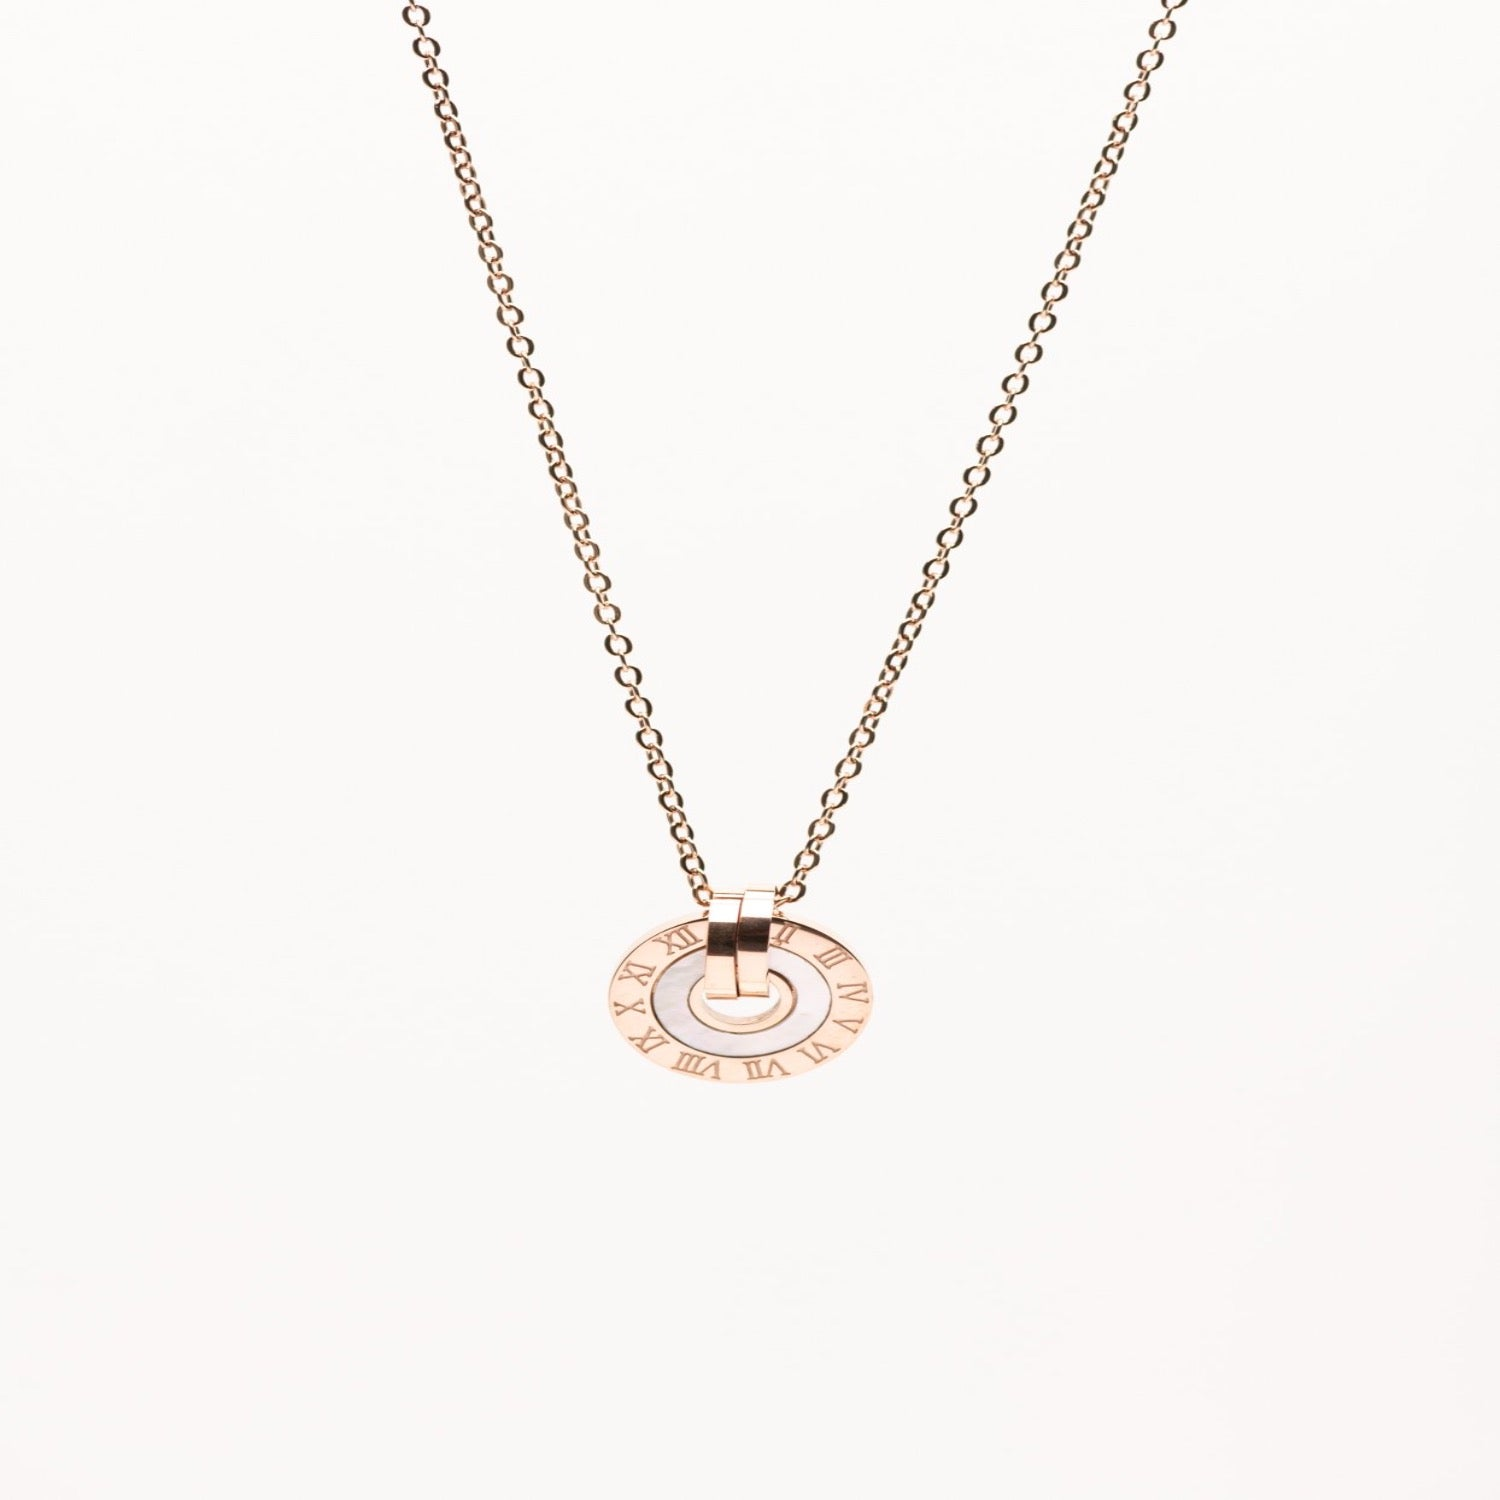 Stainless Steel Rose Gold round pendant with mother of perle necklace